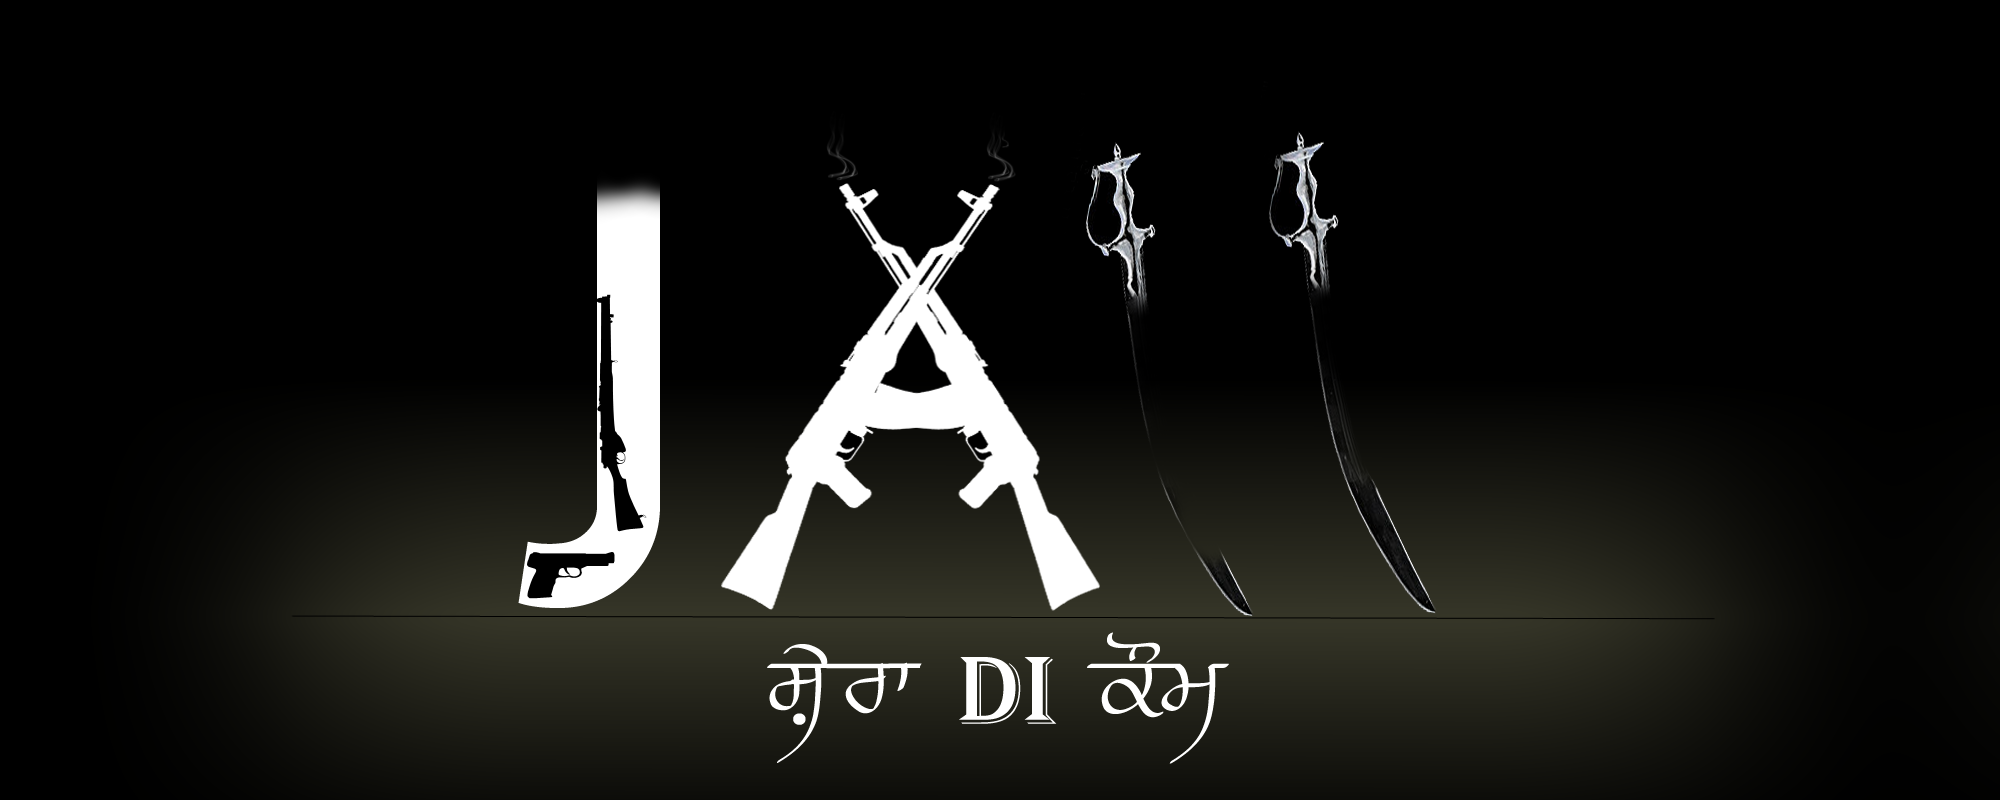 Wallpaper download jat - Jatt Desicomments Com